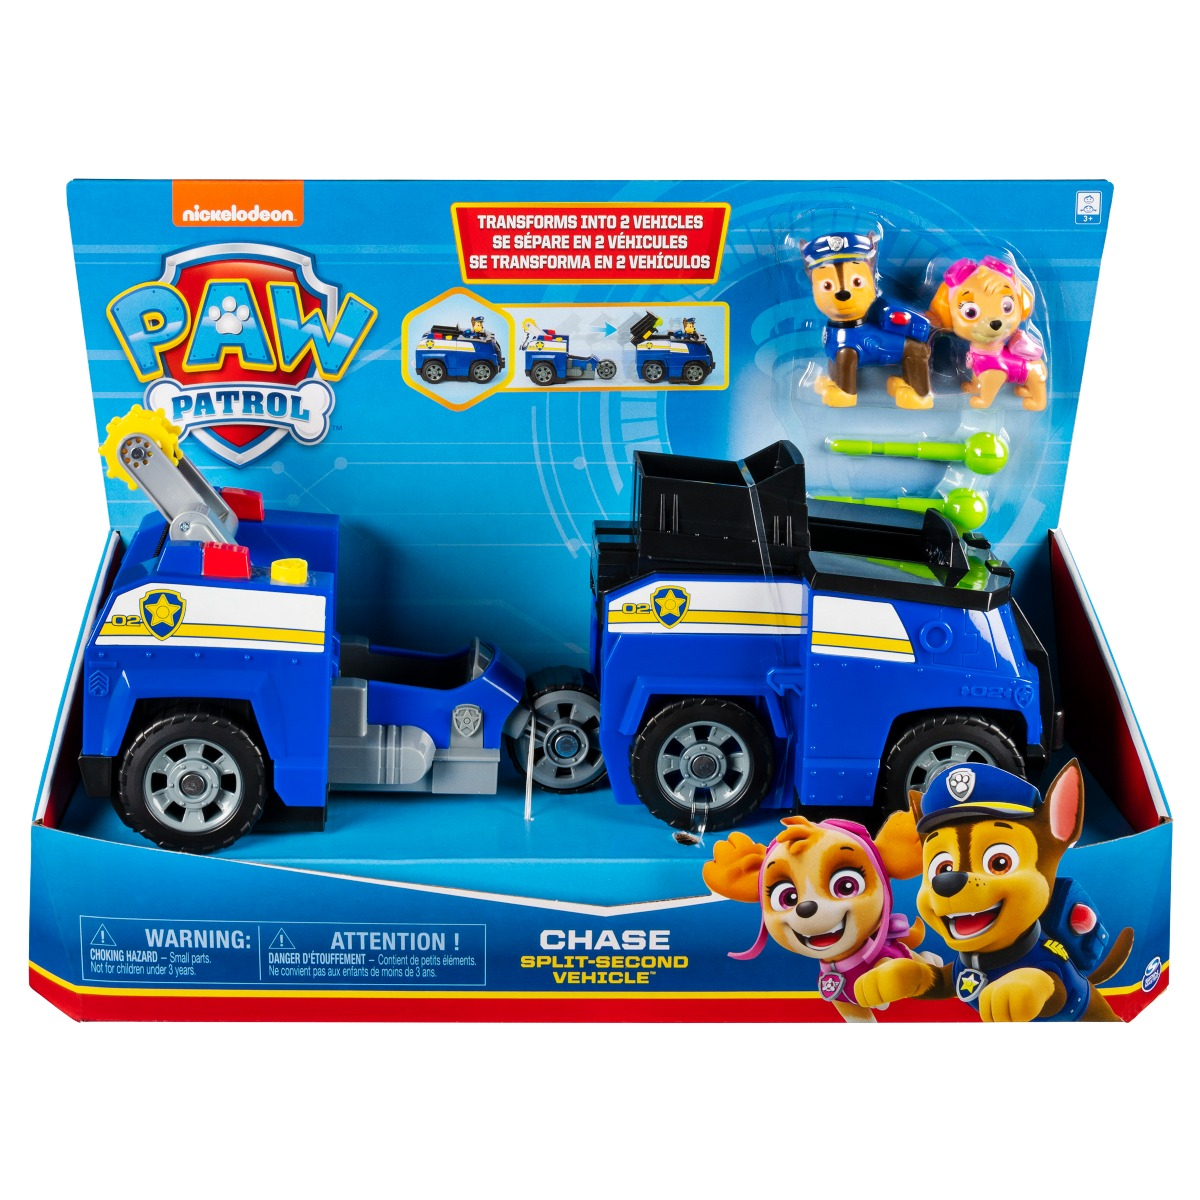 Set Masinuta cu figurine Paw Patrol Split Second Vehicle 20122545